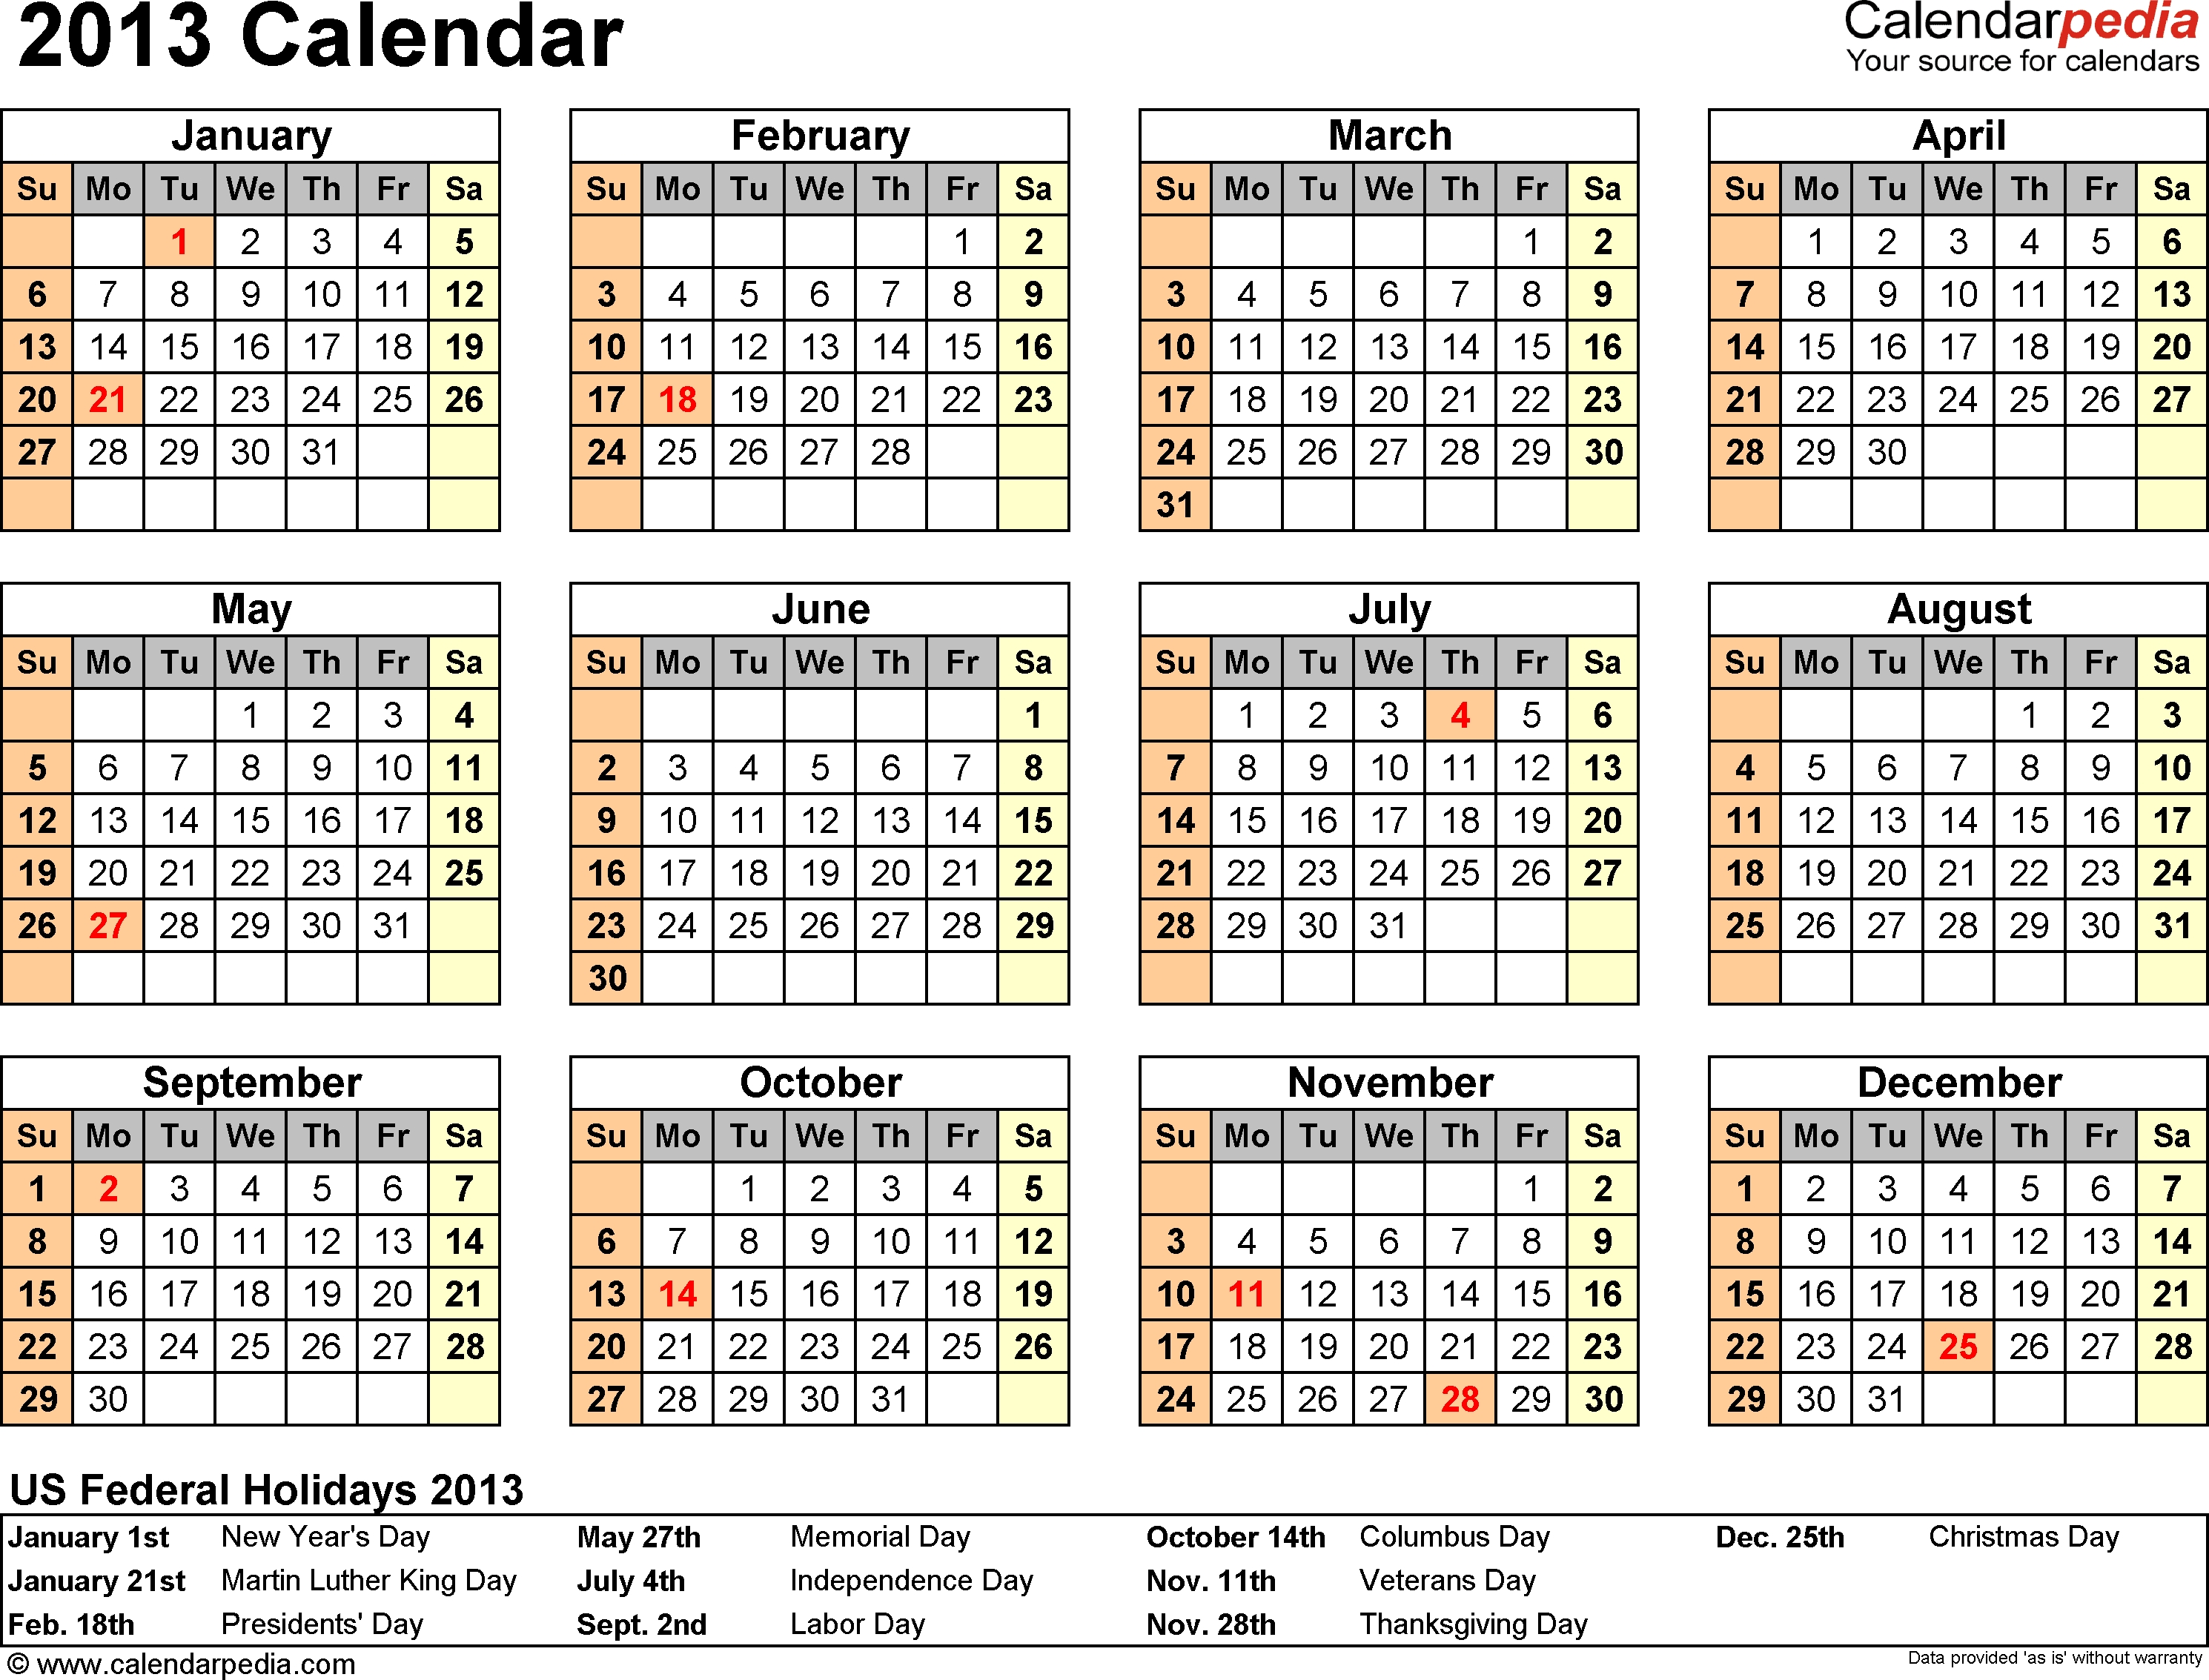 2013 Calendar Word - 11 Free Printable Word Templates (.docx)-Blank Yearly Calendar Template In Word 2003